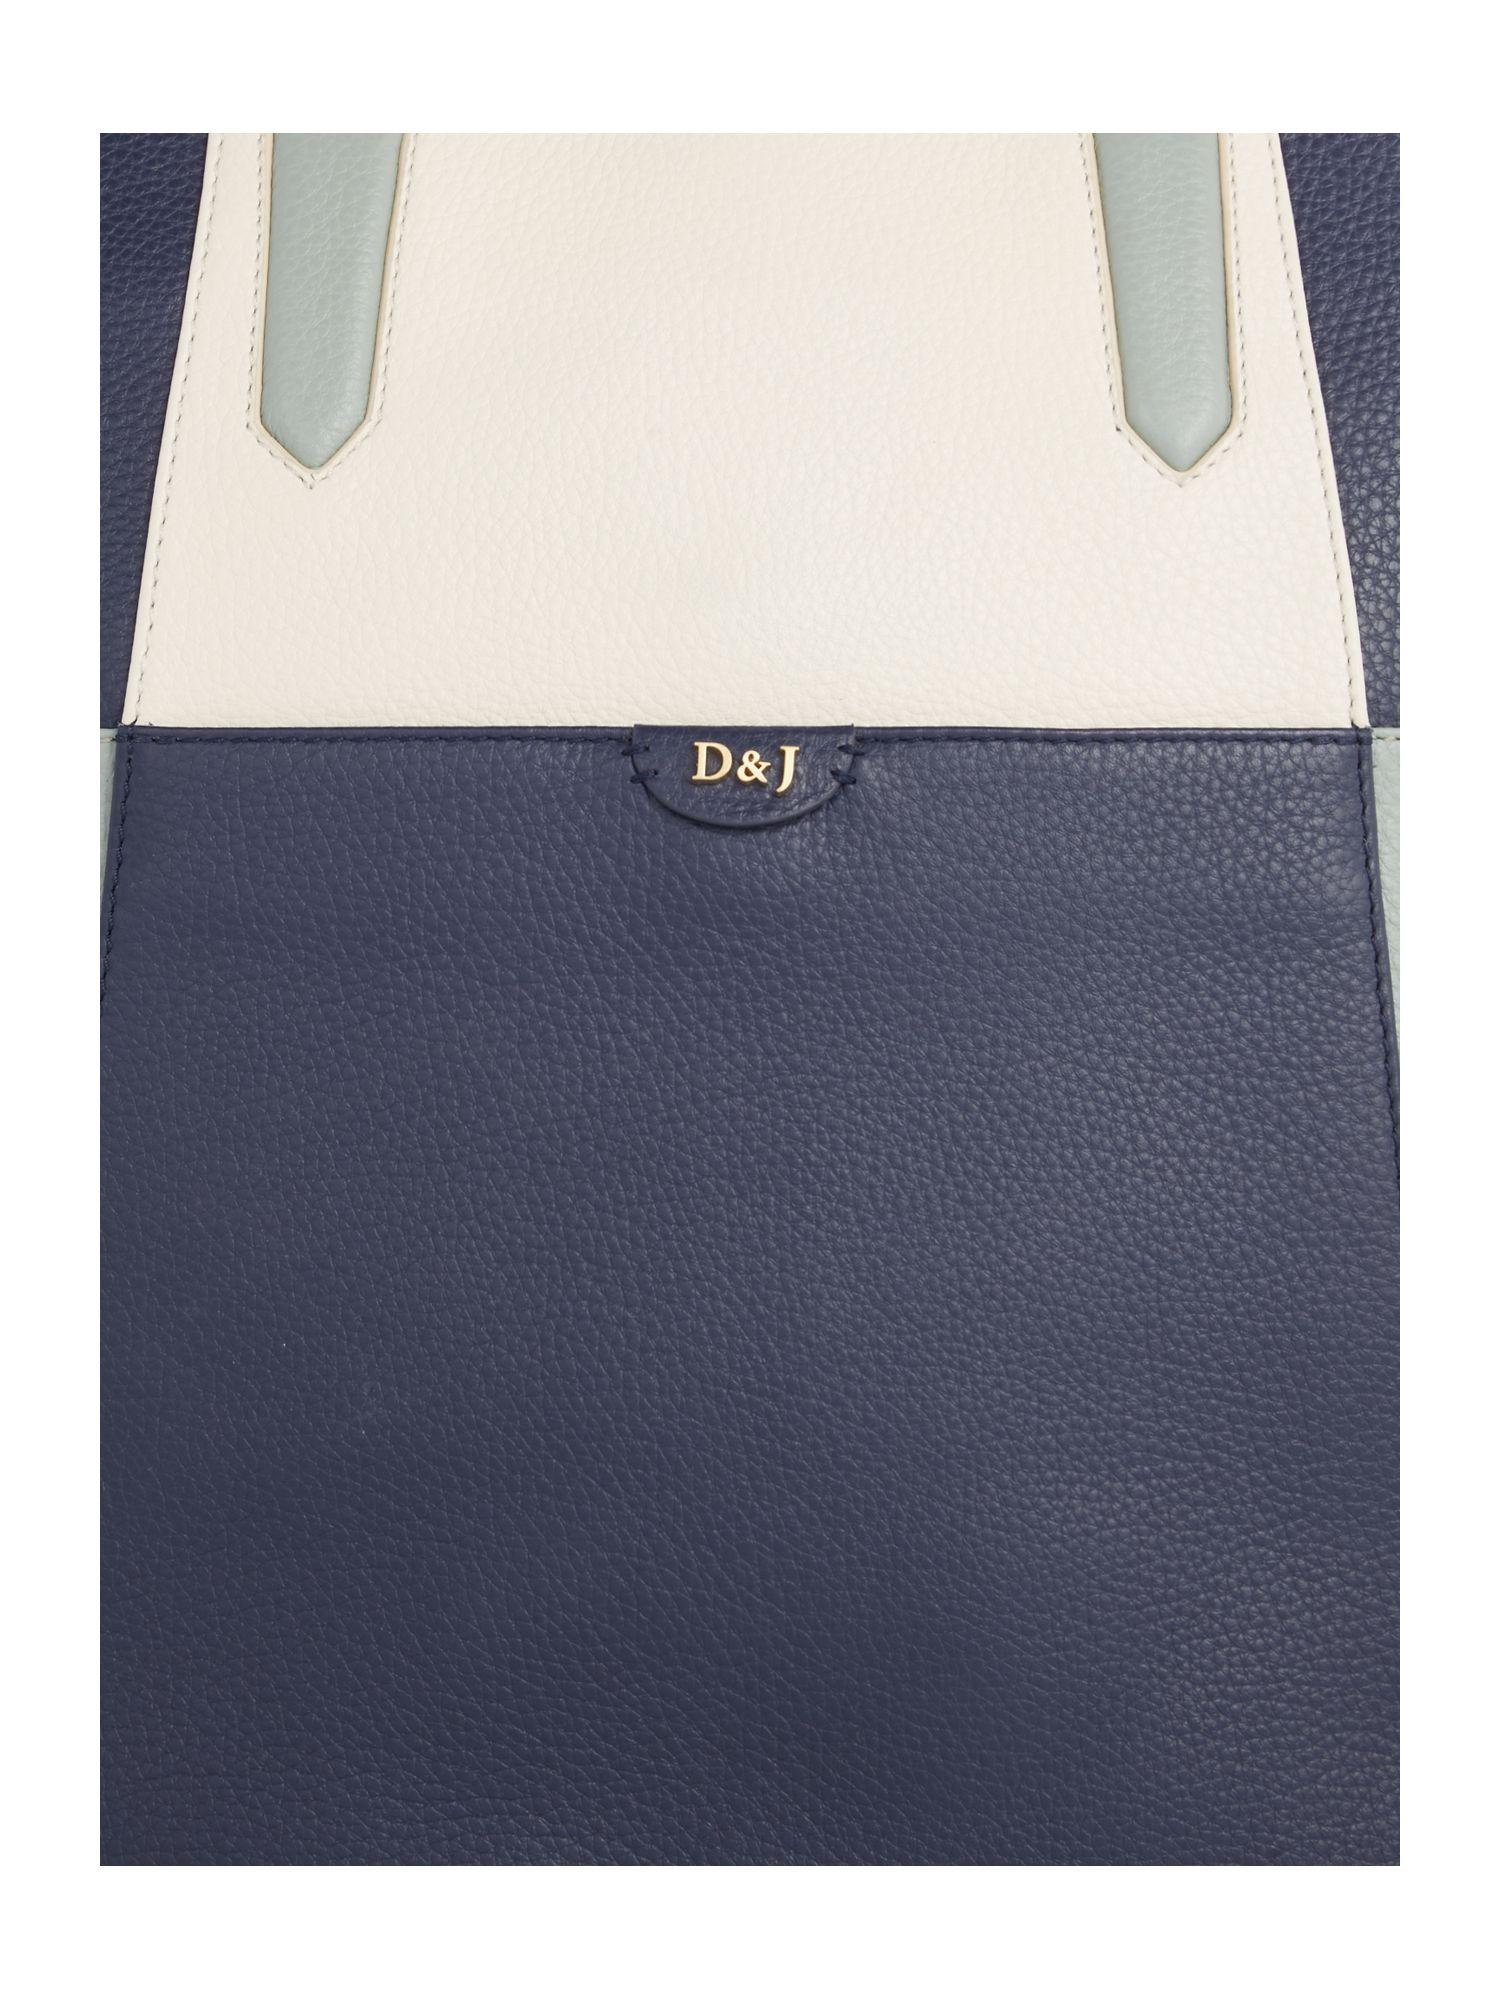 Dickins & Jones Leather Embry Tote Bag in Blue